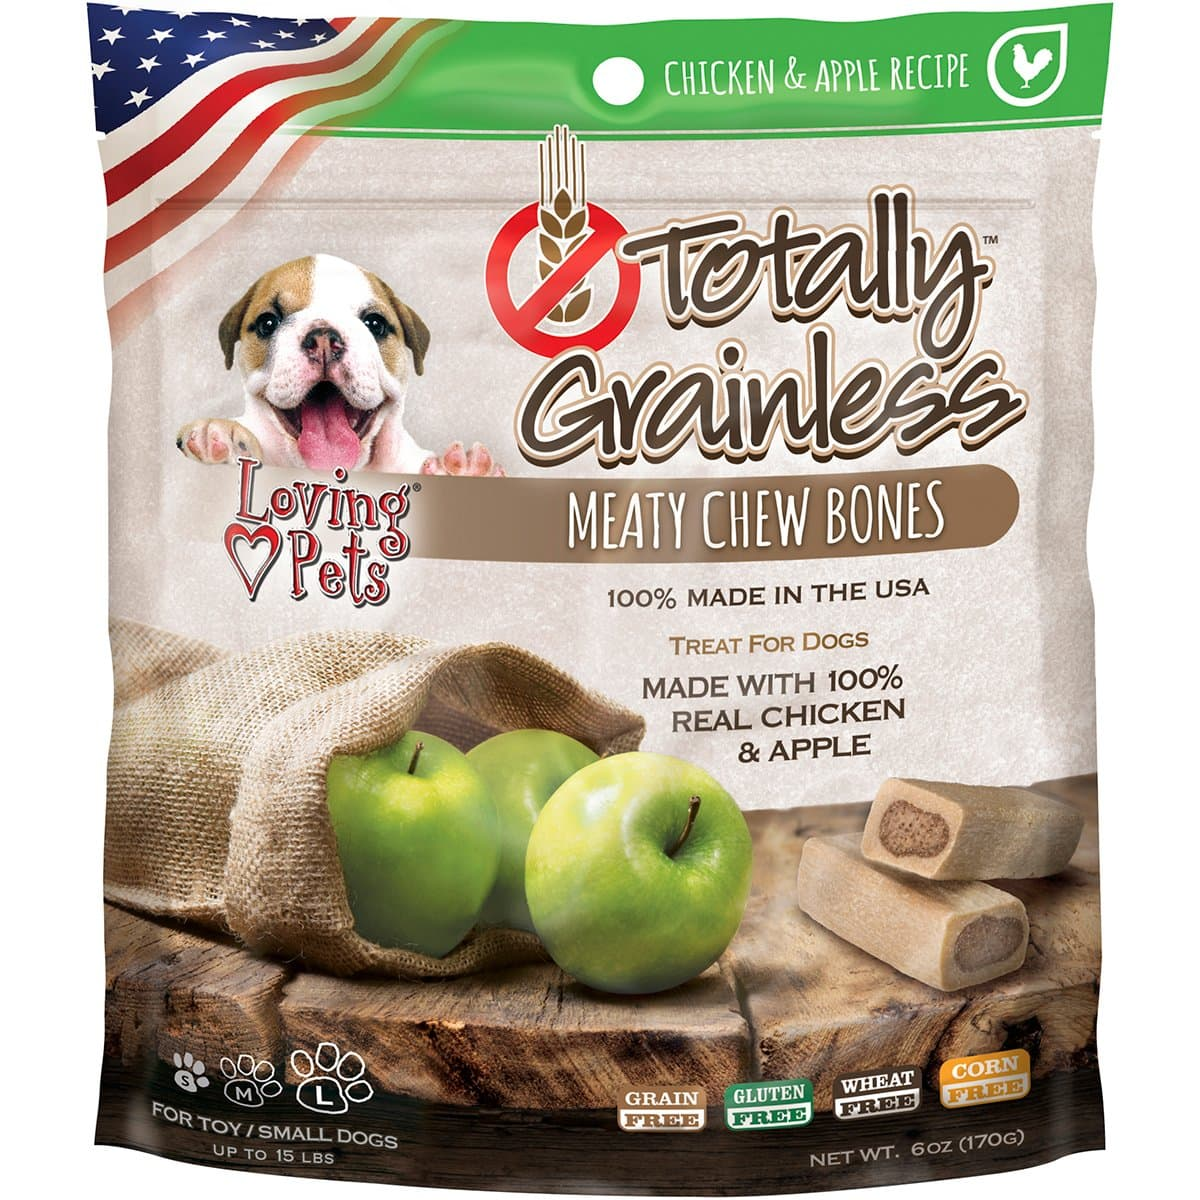 Loving Pets Totally Grainless for Dogs, Meaty Chew Bones 6 oz (Made in USA) Chicken and Apple $1.85 FS w/ Prime